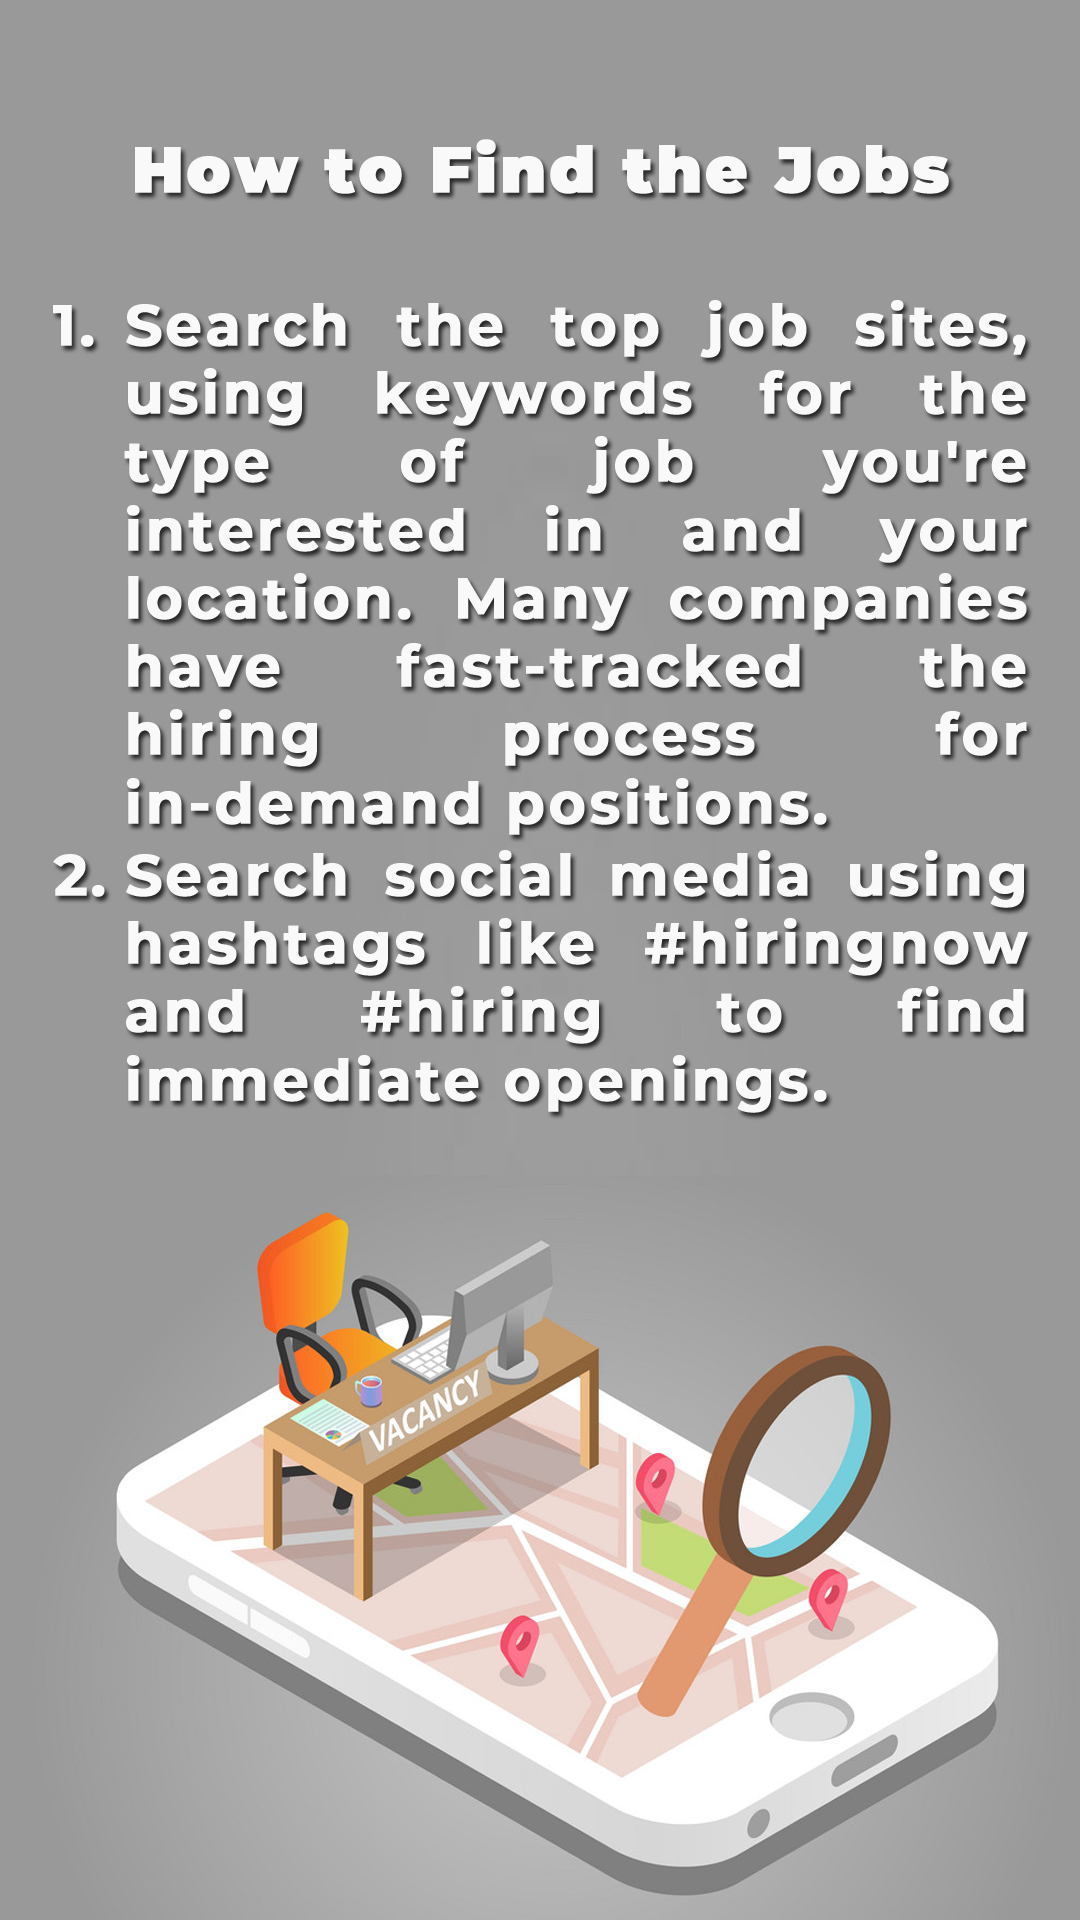 HOW TO FIND THE JOBS